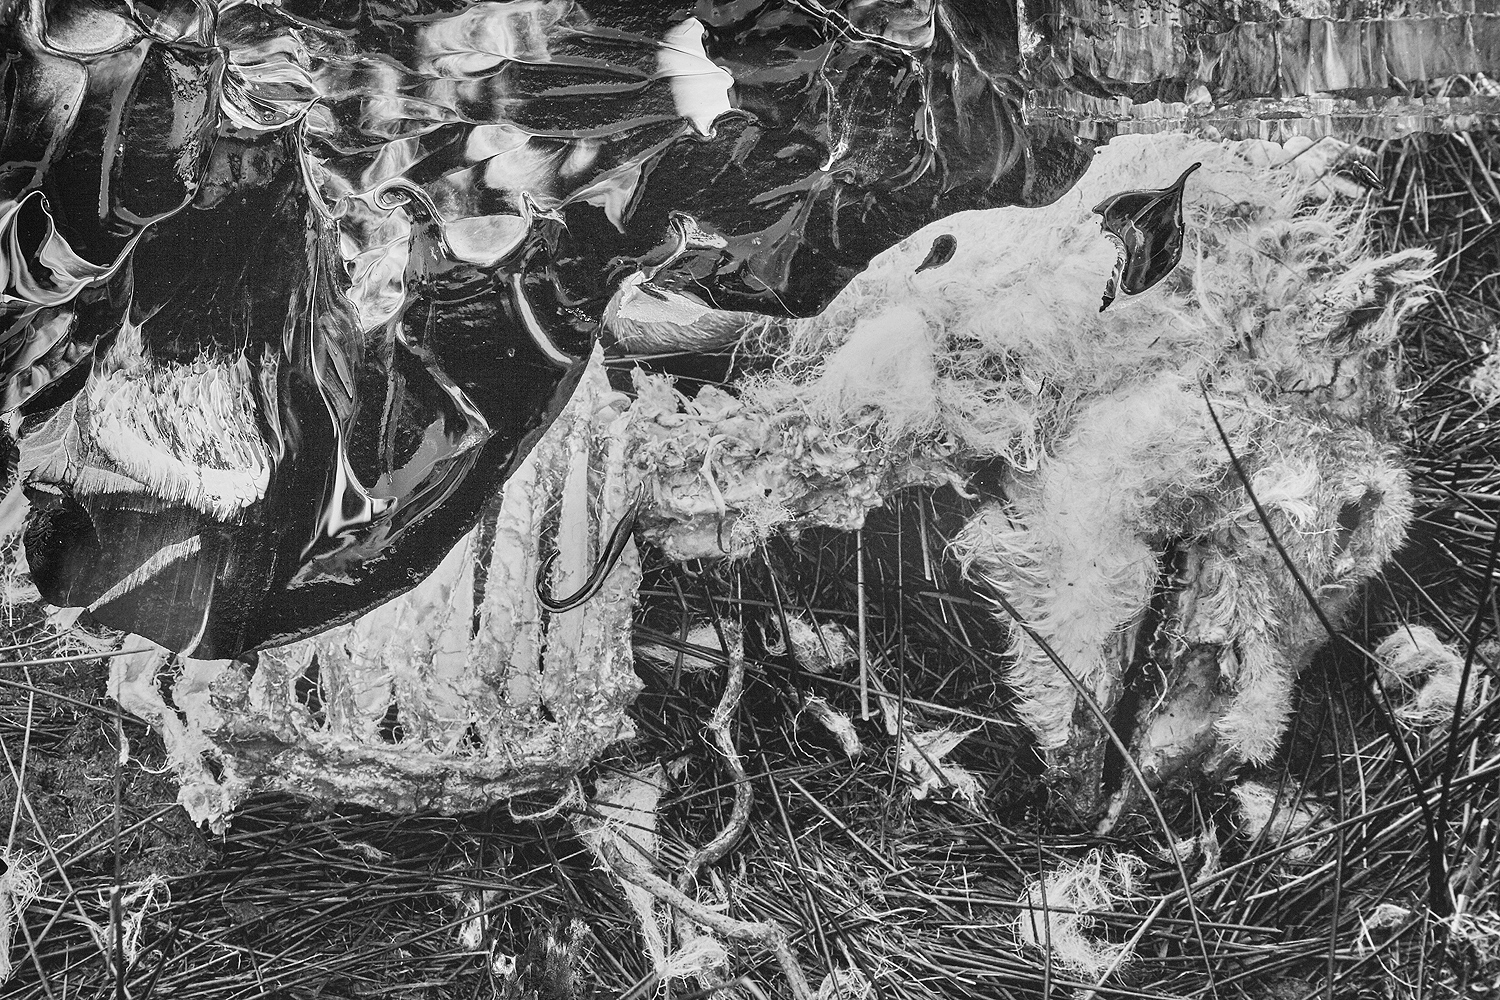 #painting-#photography#fineart#popart-#peterwesth-Peter Westh-@peterwesth-detail-sheep-dead-wales-fields